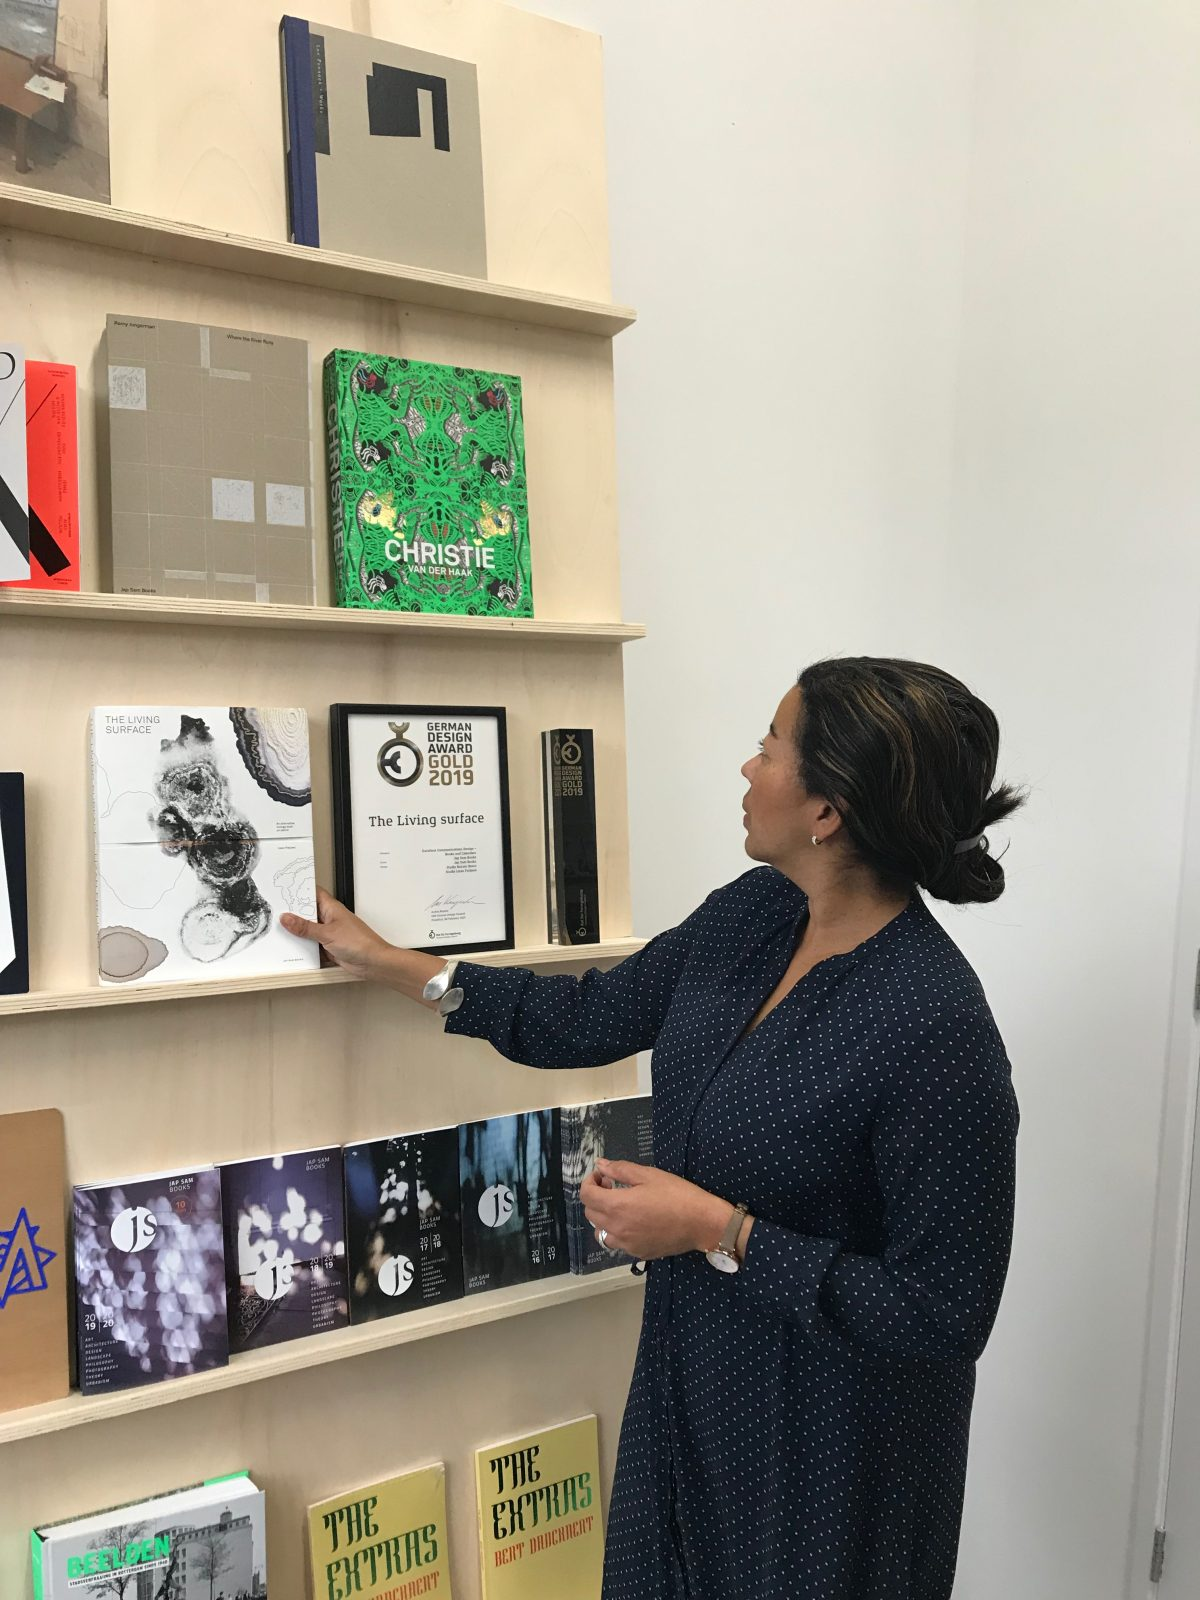 Jap Sam Books Talks About the Future of Art Books and Publishing